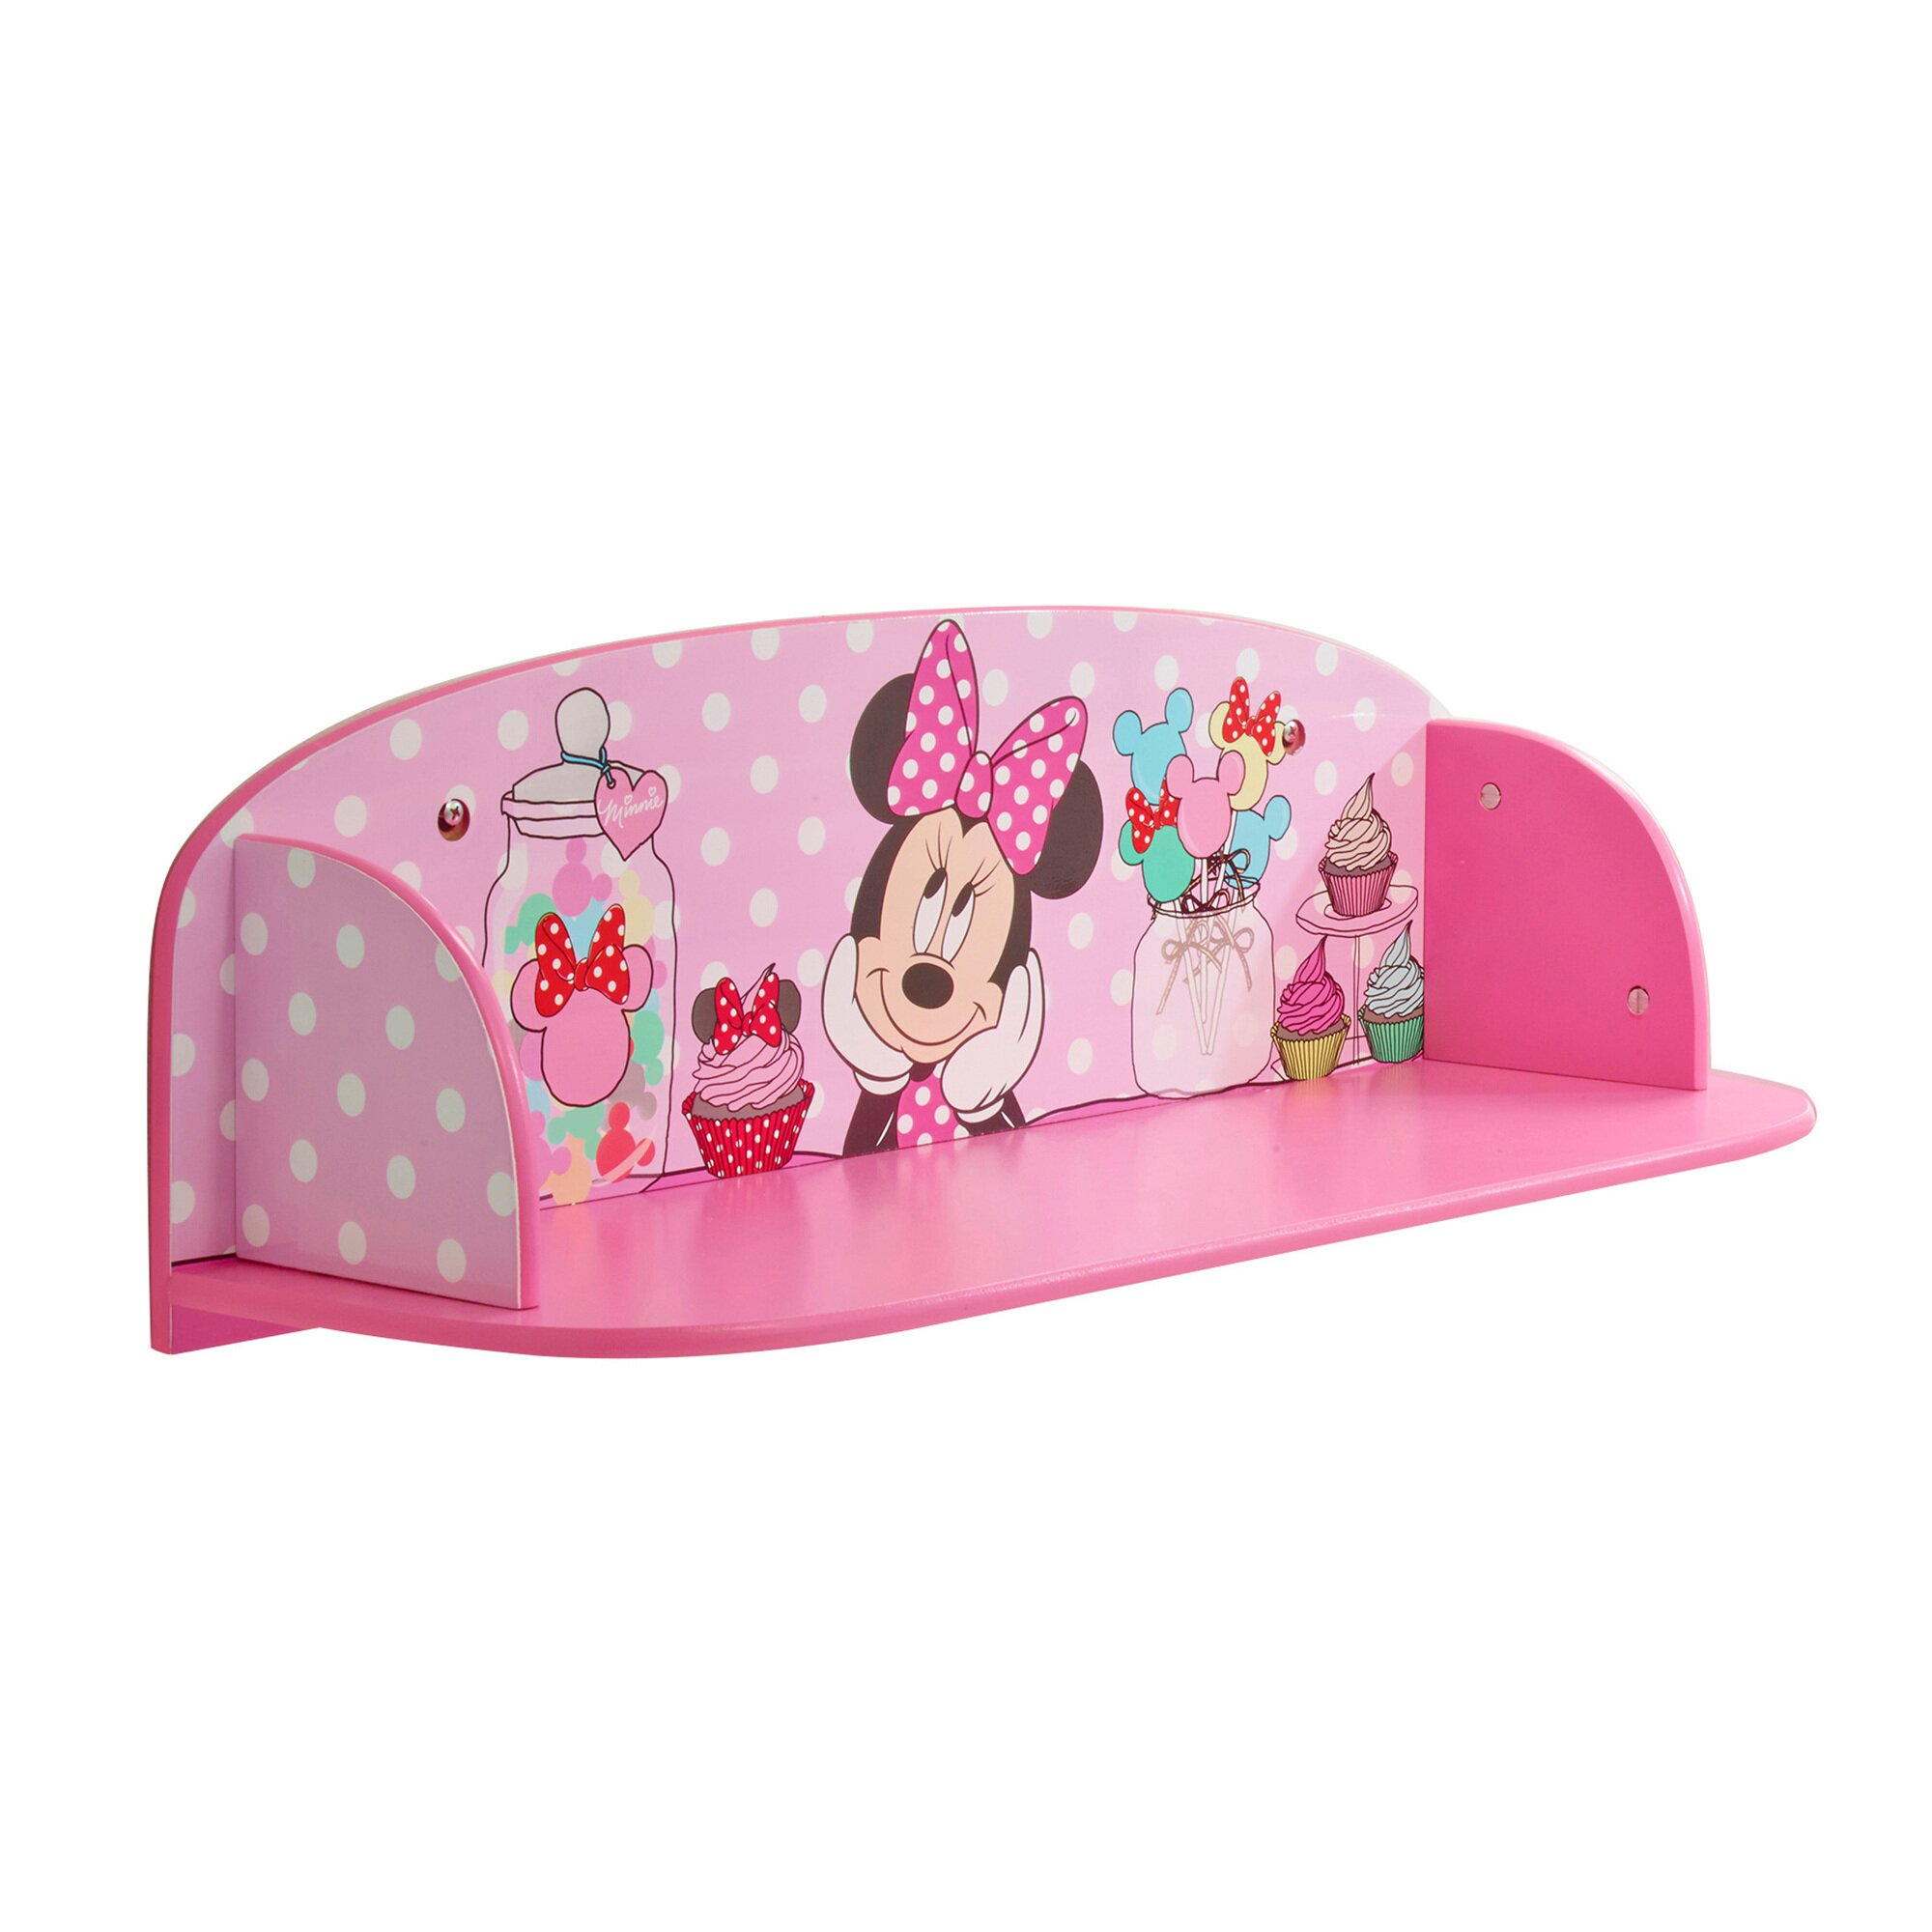 Minnie Mouse Wandregal